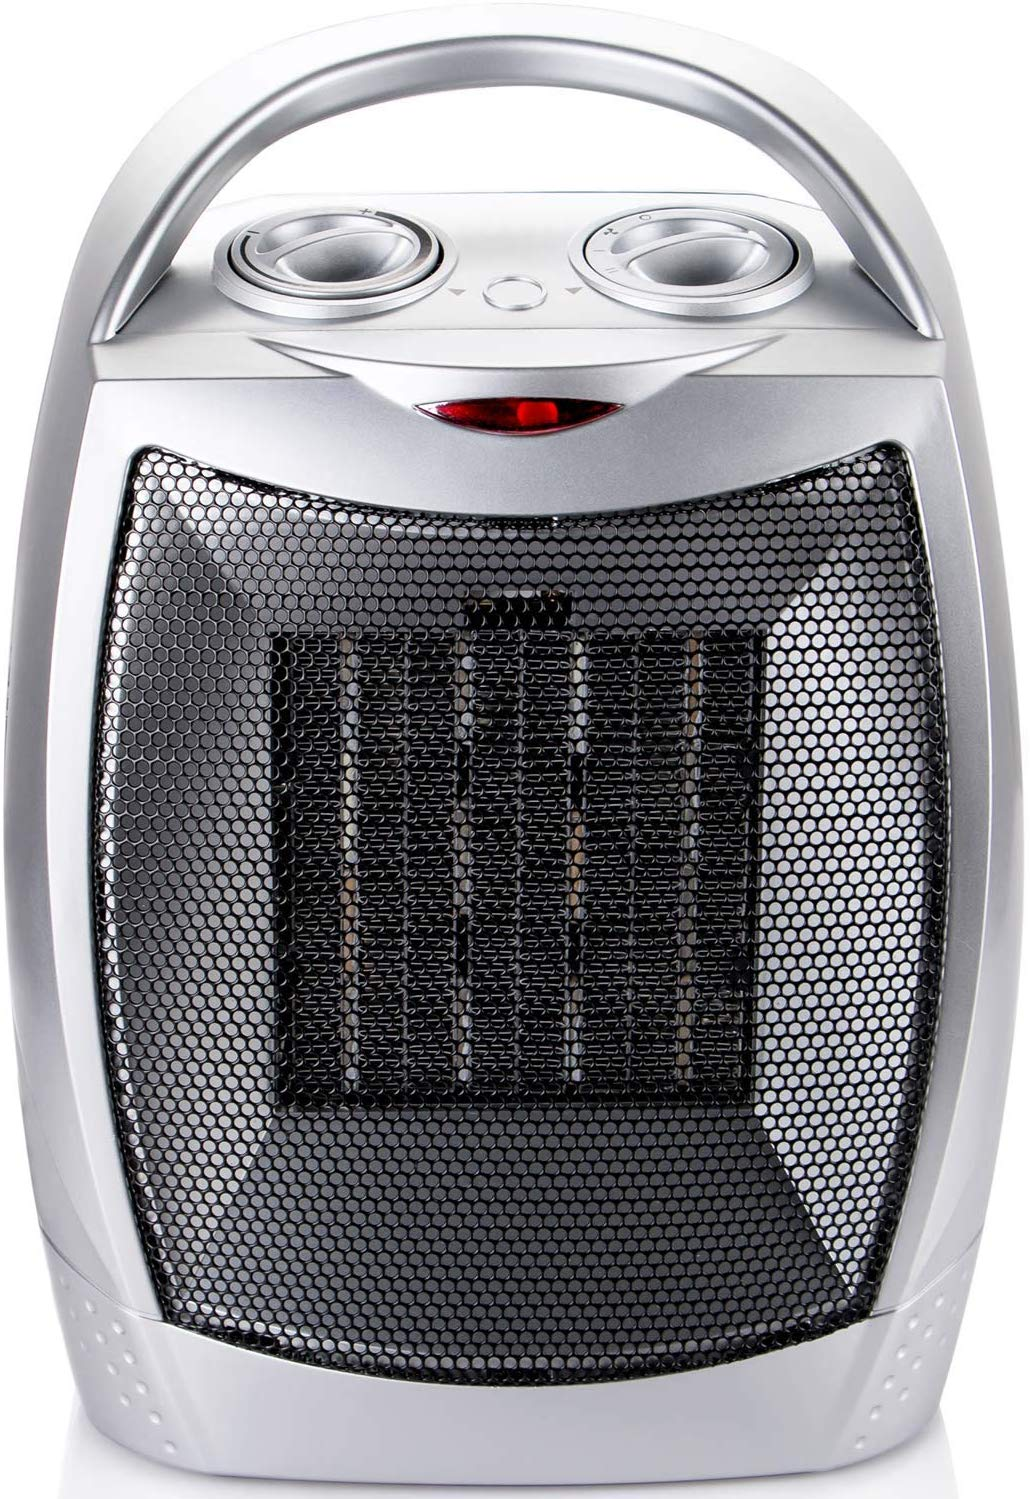 Best Heater for Winter: Brightown Ceramic Space Heater